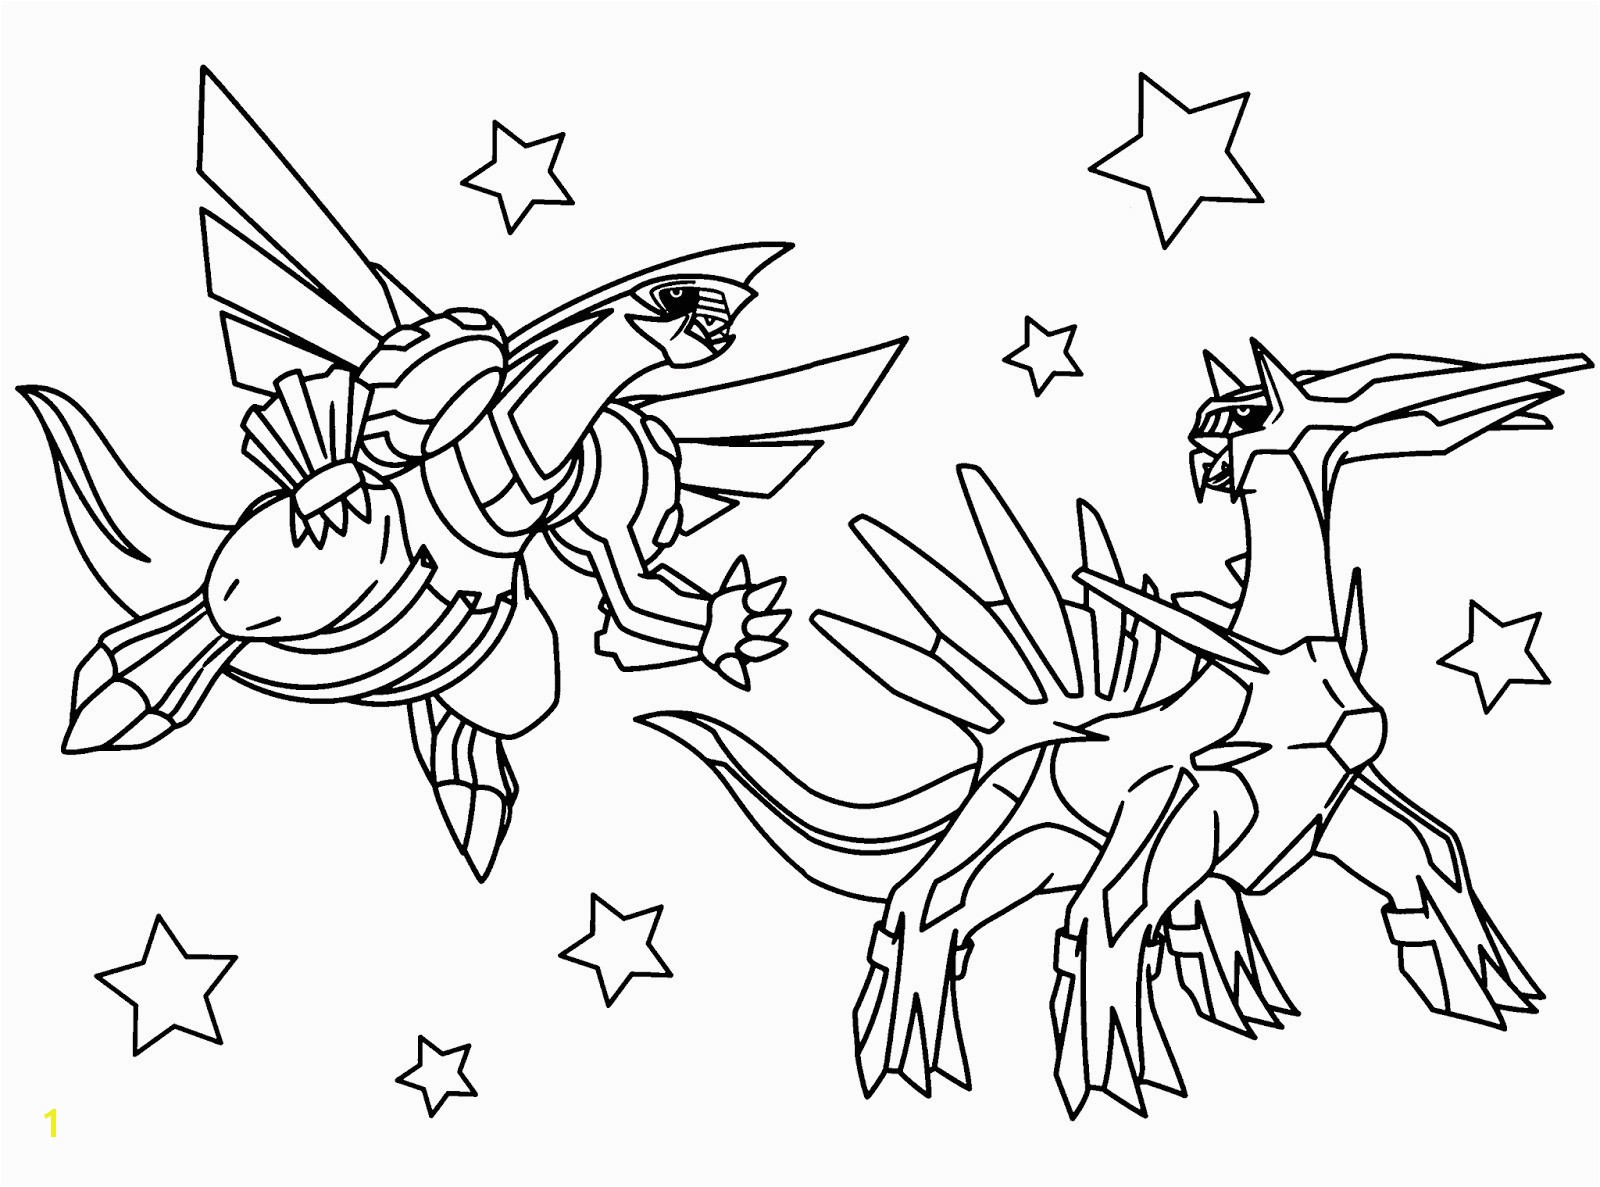 All Legendary Pokemon Coloring Pages New Legendary Pokemon Coloring Pages Luxury Awesome Pokemon Mega